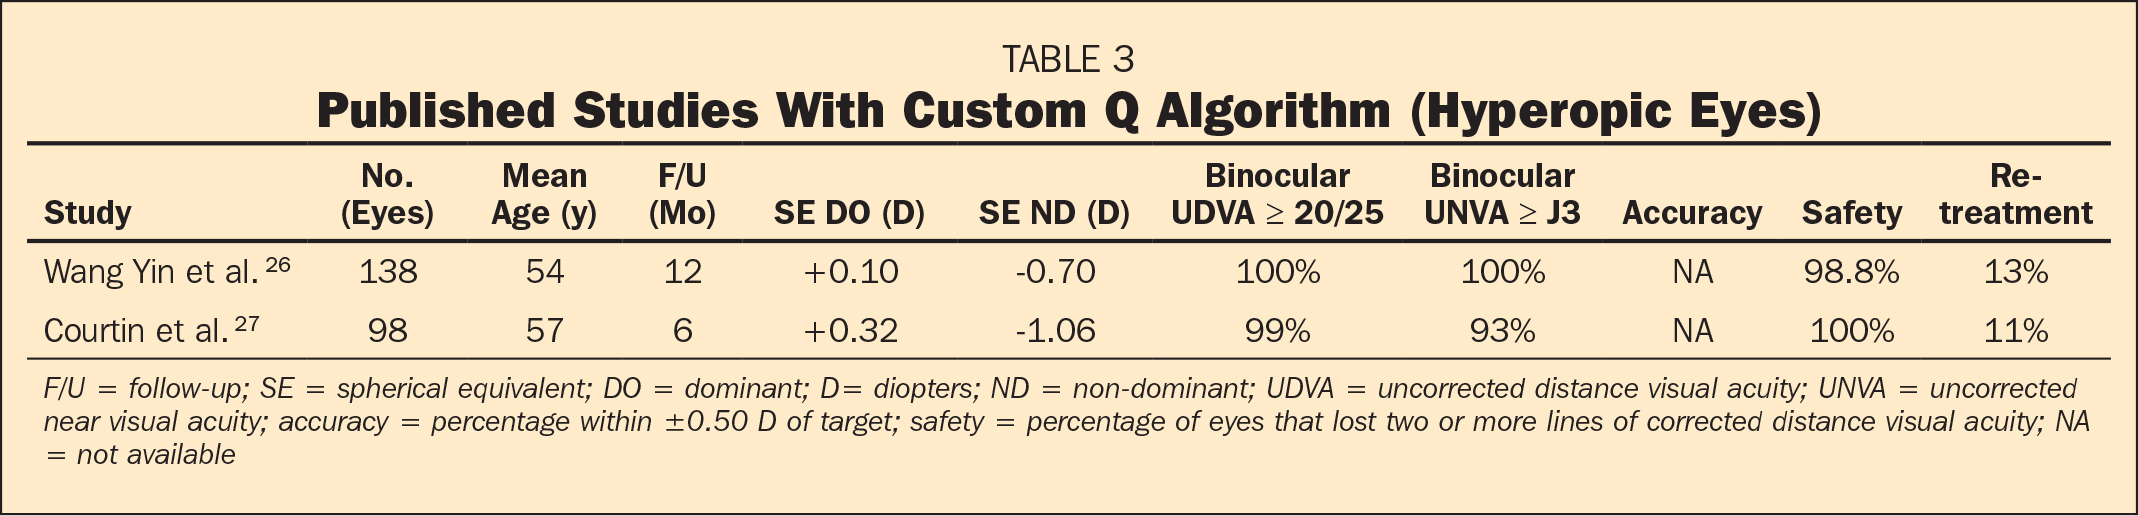 Published Studies With Custom Q Algorithm (Hyperopic Eyes)